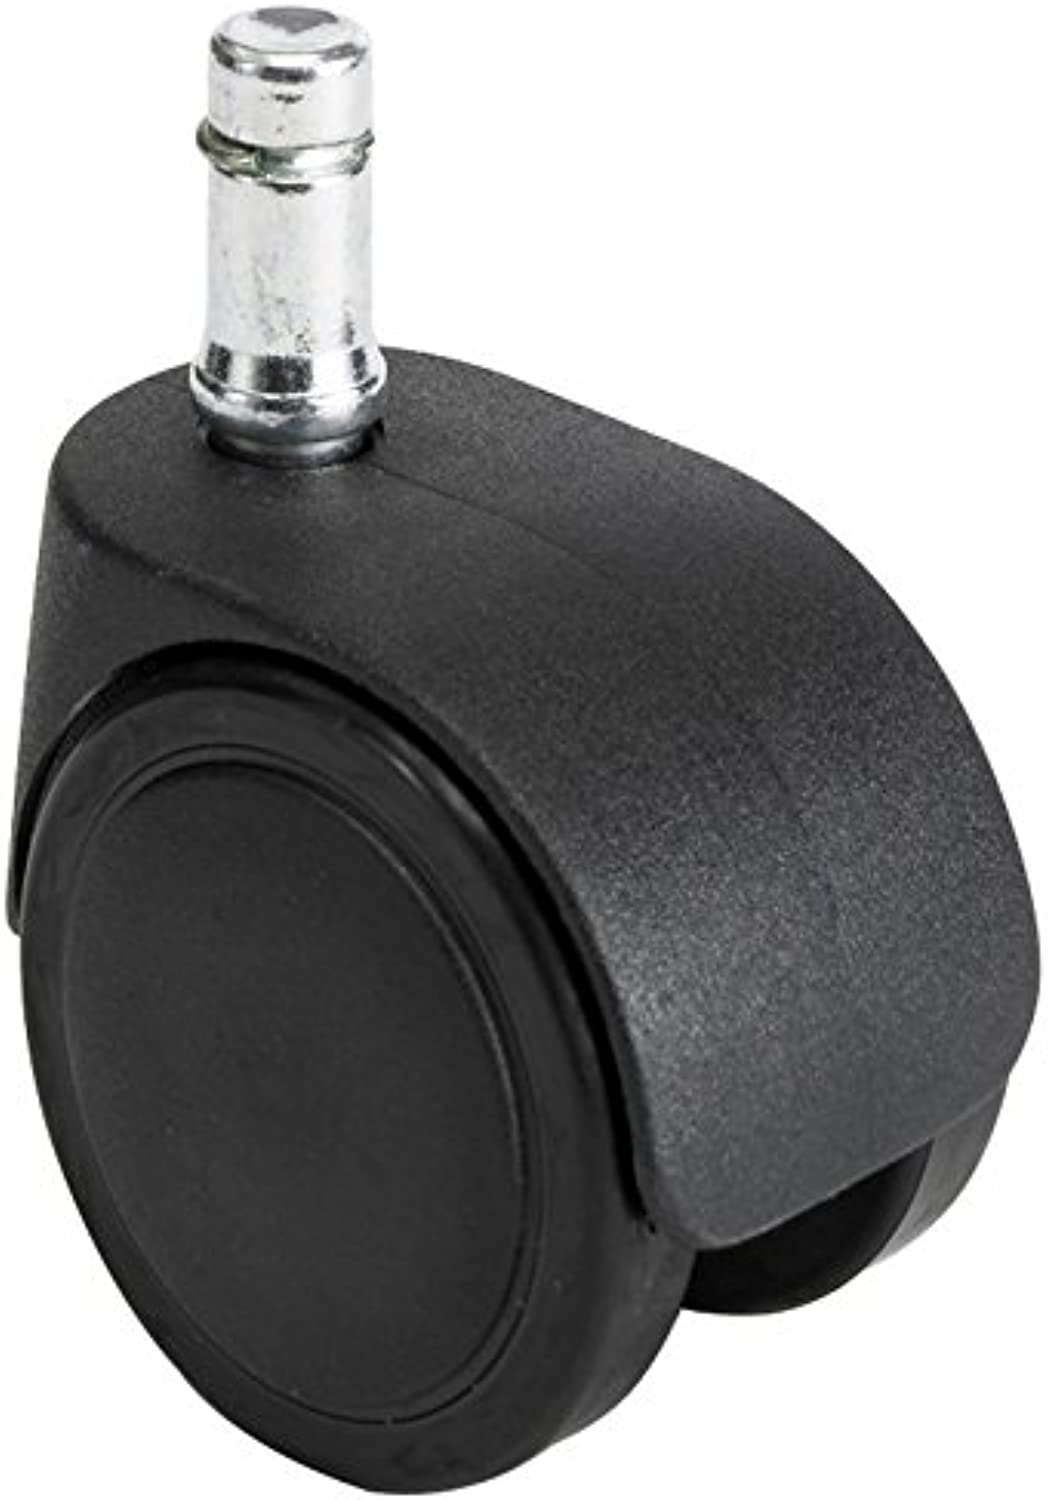 Safco 6678 - Casters For Hard Floor - Set Of 5